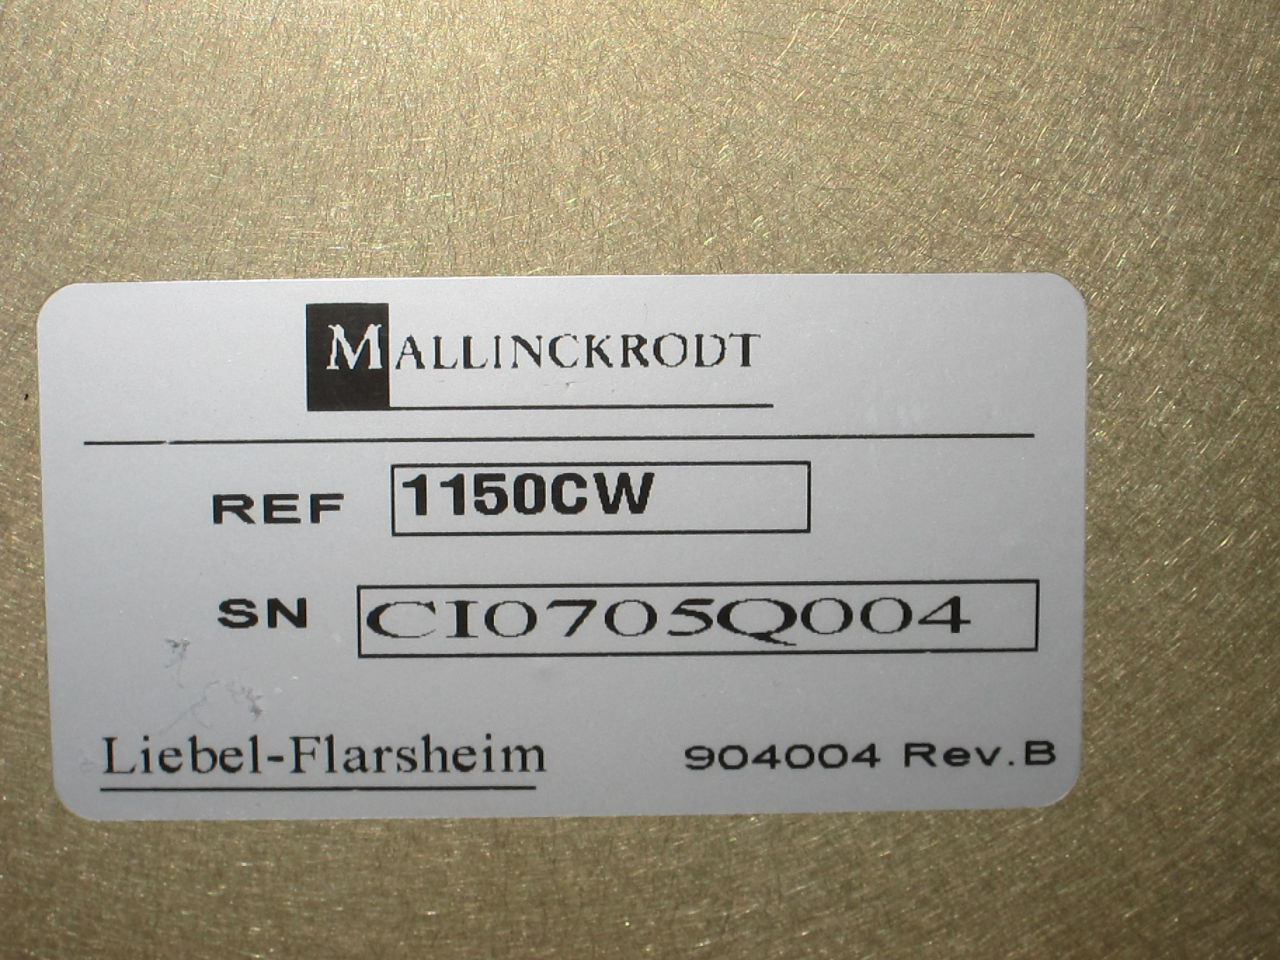 LIEBEL-FLARSHEIM Mallinckrodt Blanket / Solution Warmer